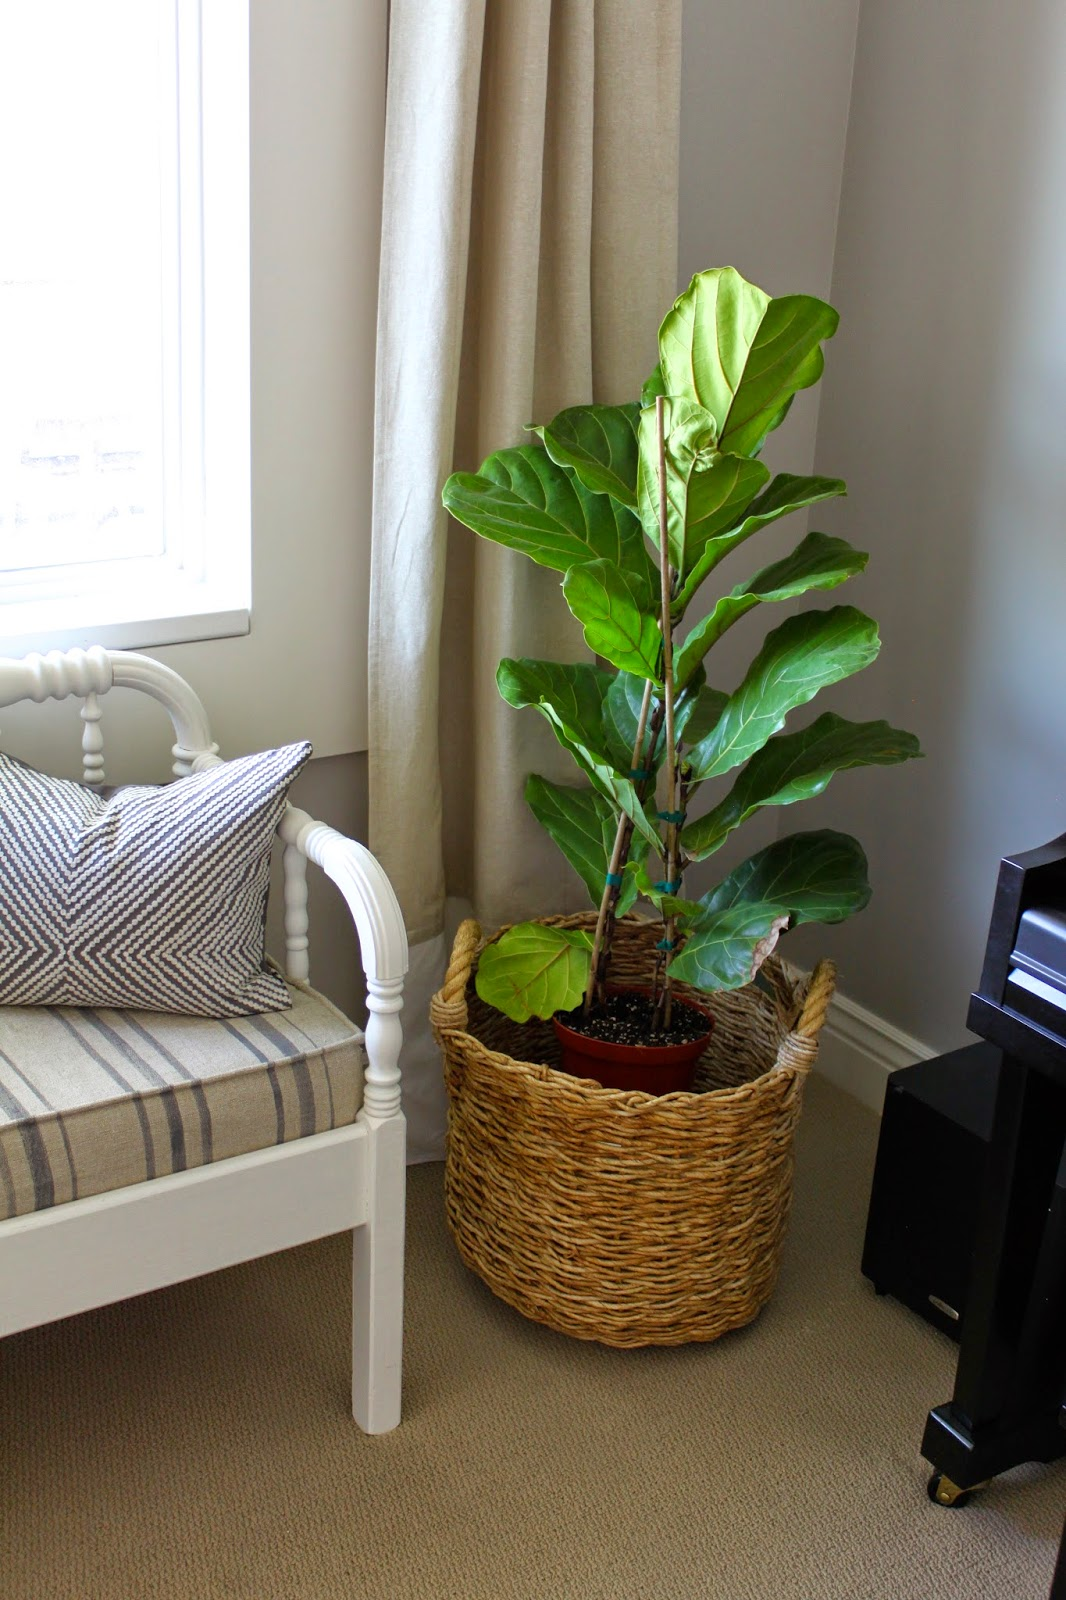 back in may i mentioned in this post that i wanted a fiddle leaf fig for my corner basket i finally found one that was a good size for a great price